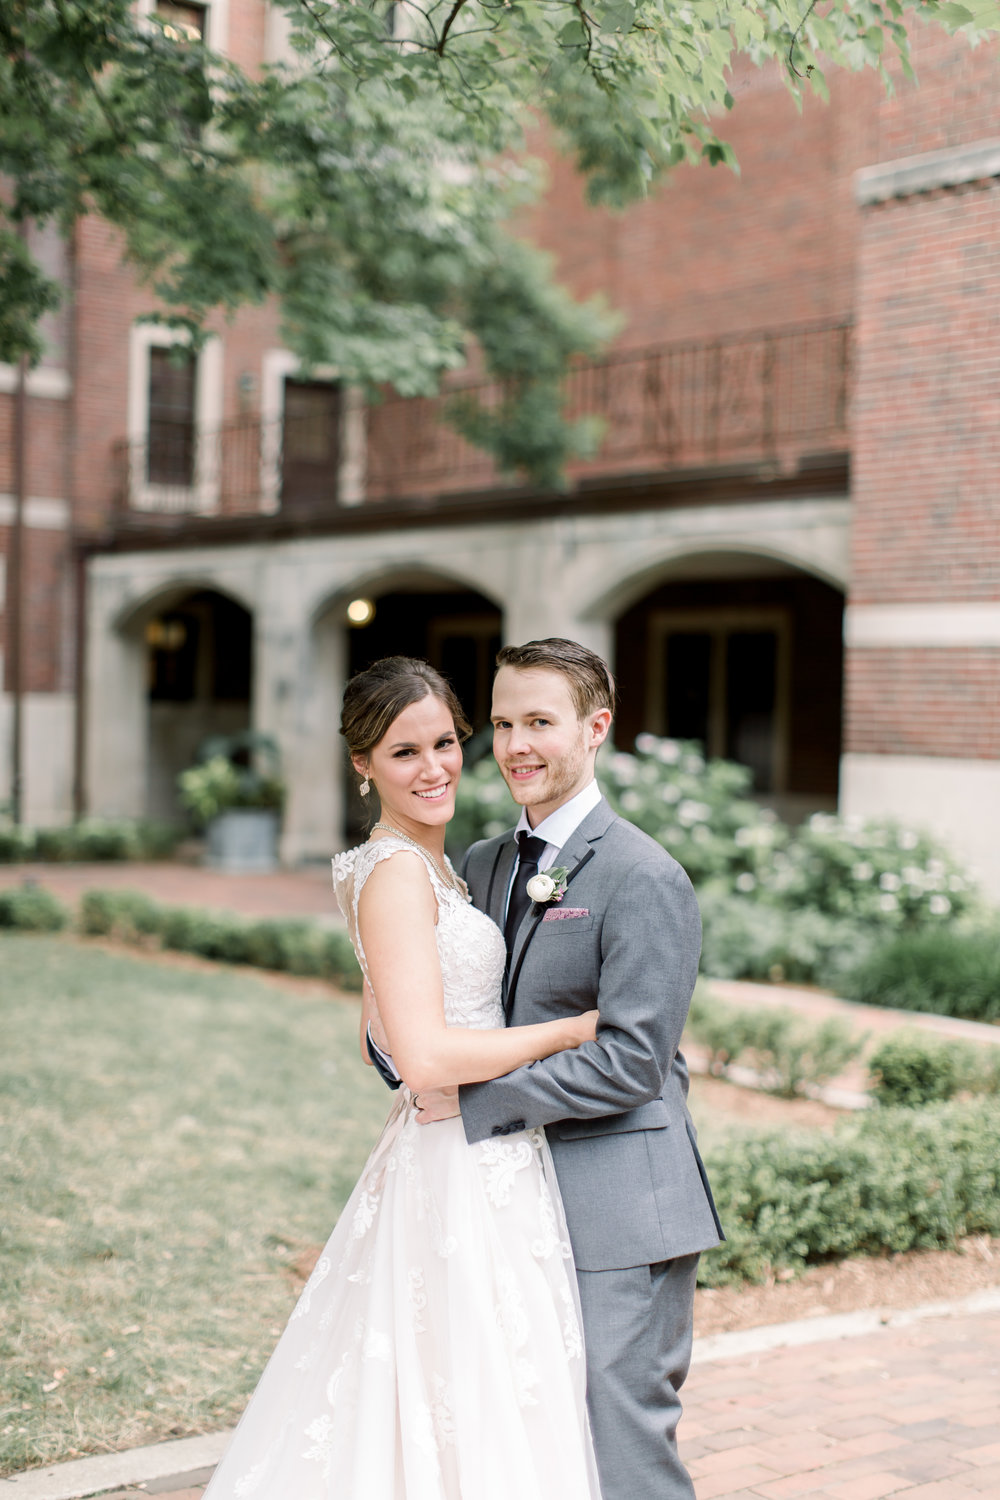 Wedding on University of Michigan Campus. Photo captured by Tiffany Kelly of  TRK Photography